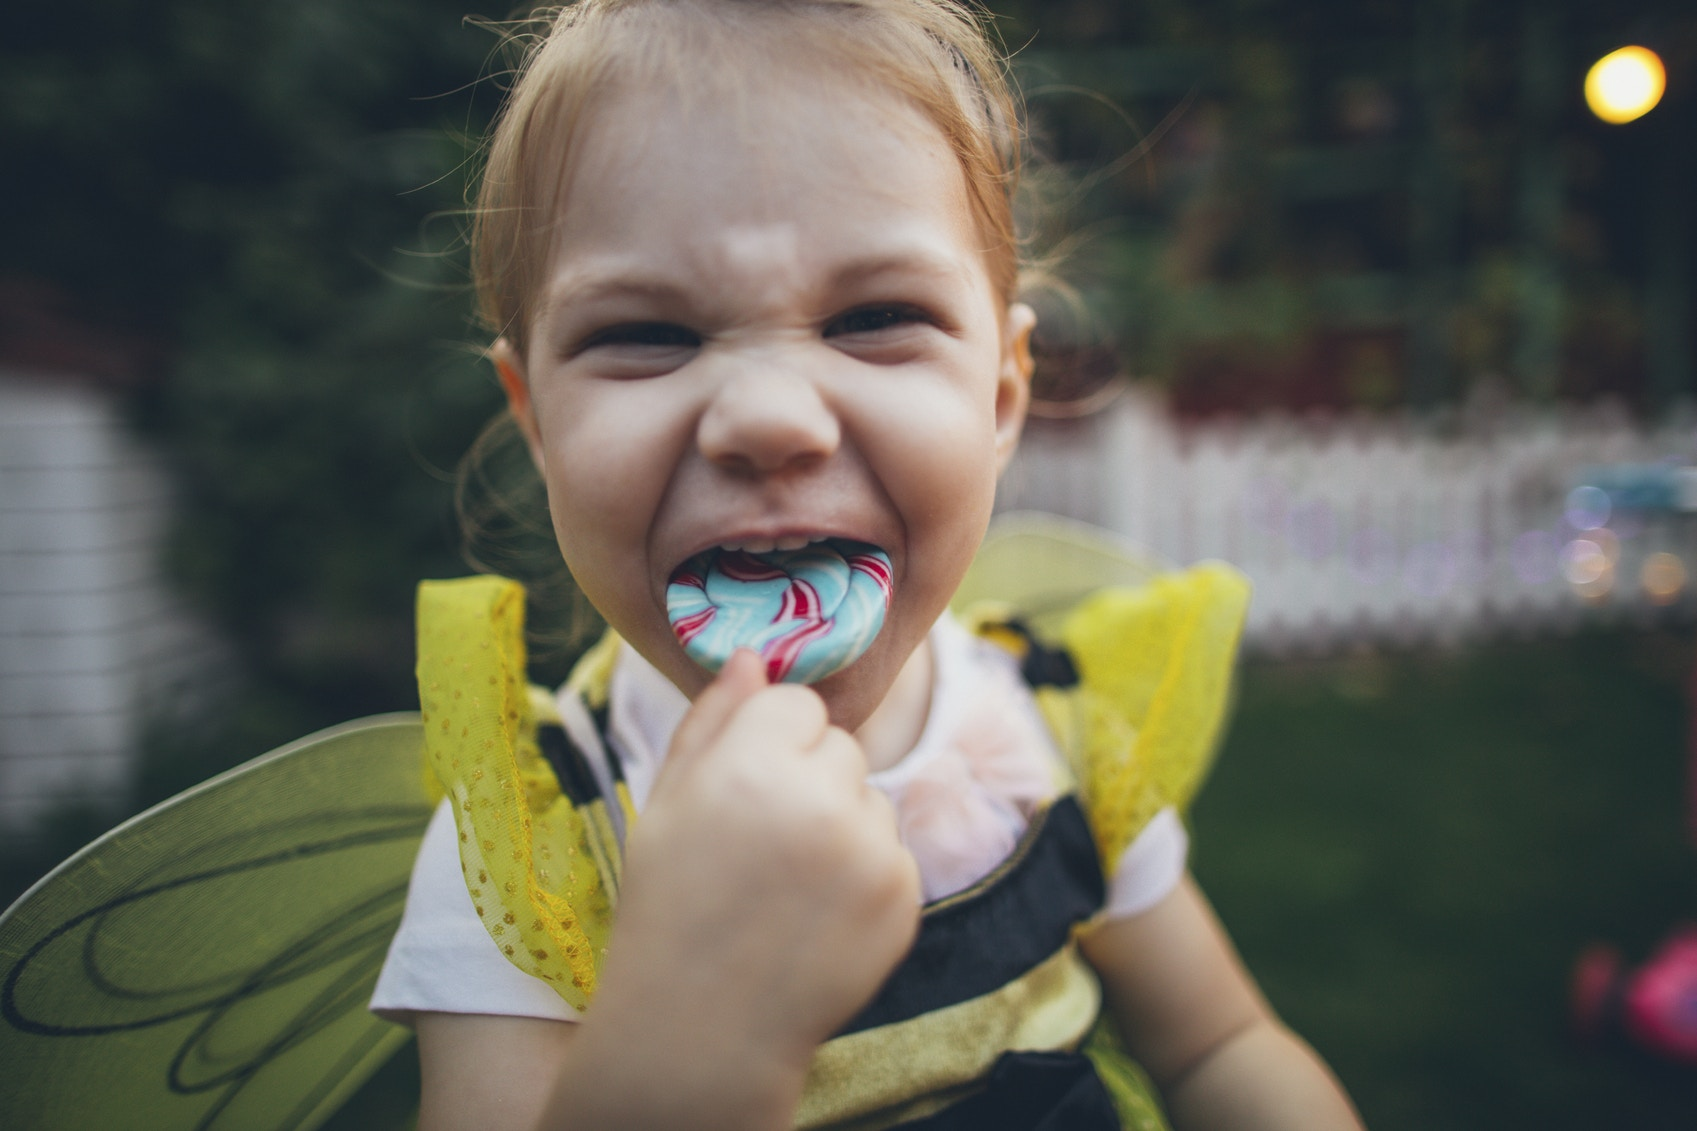 girl child eating lollipop